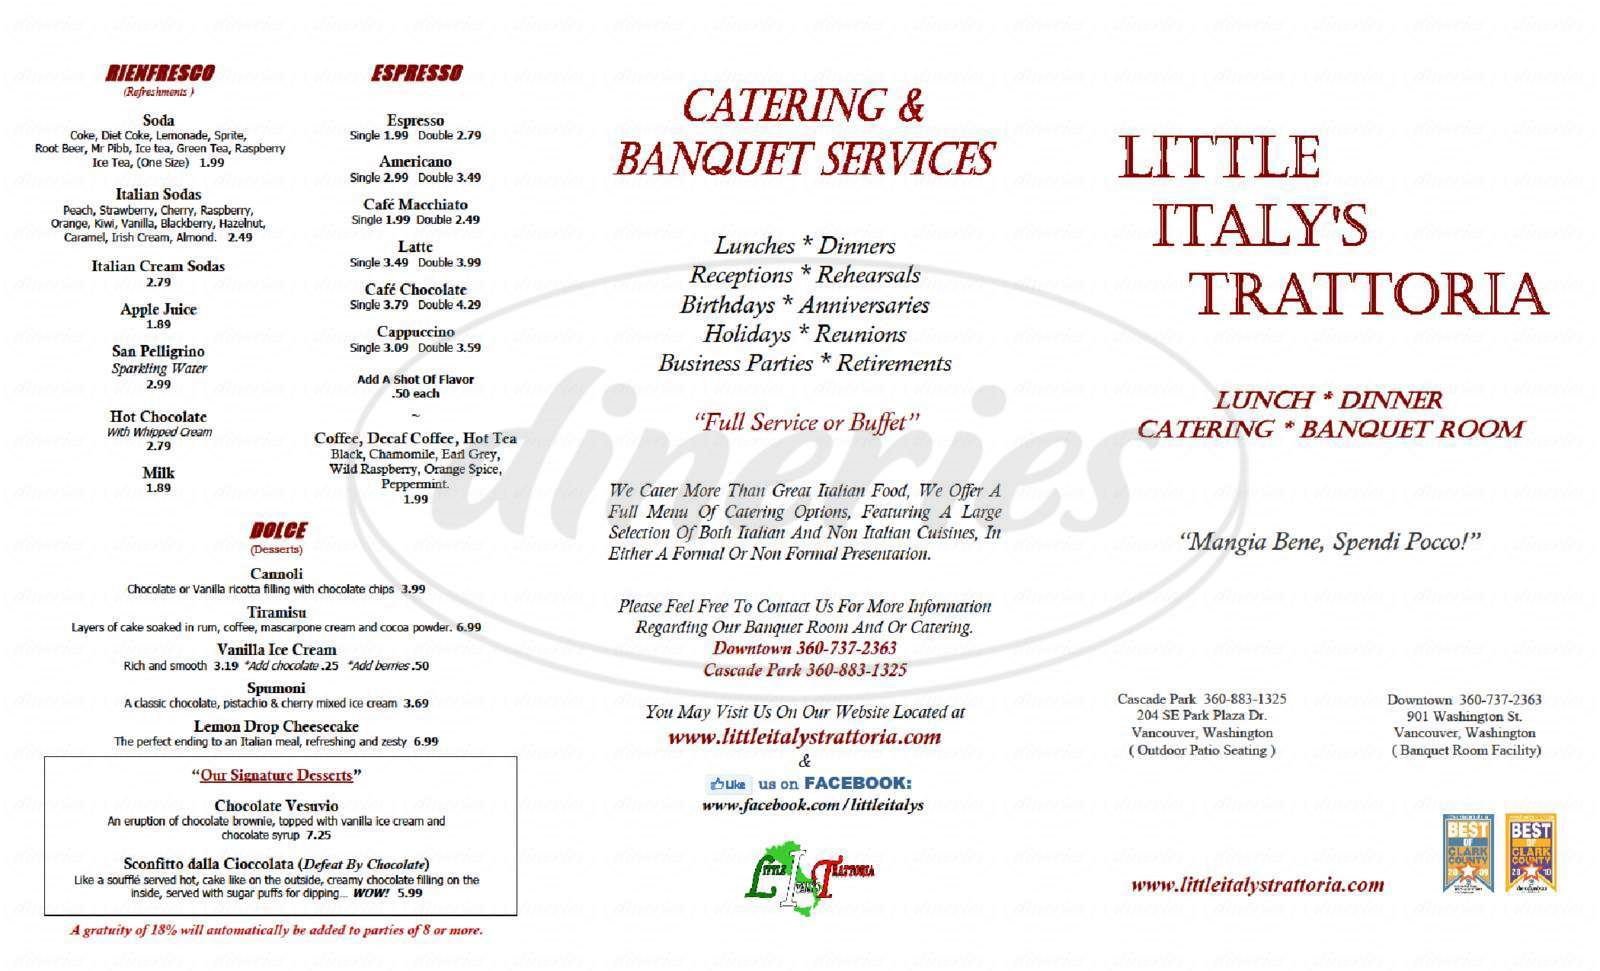 menu for Little Italy's Trattoria